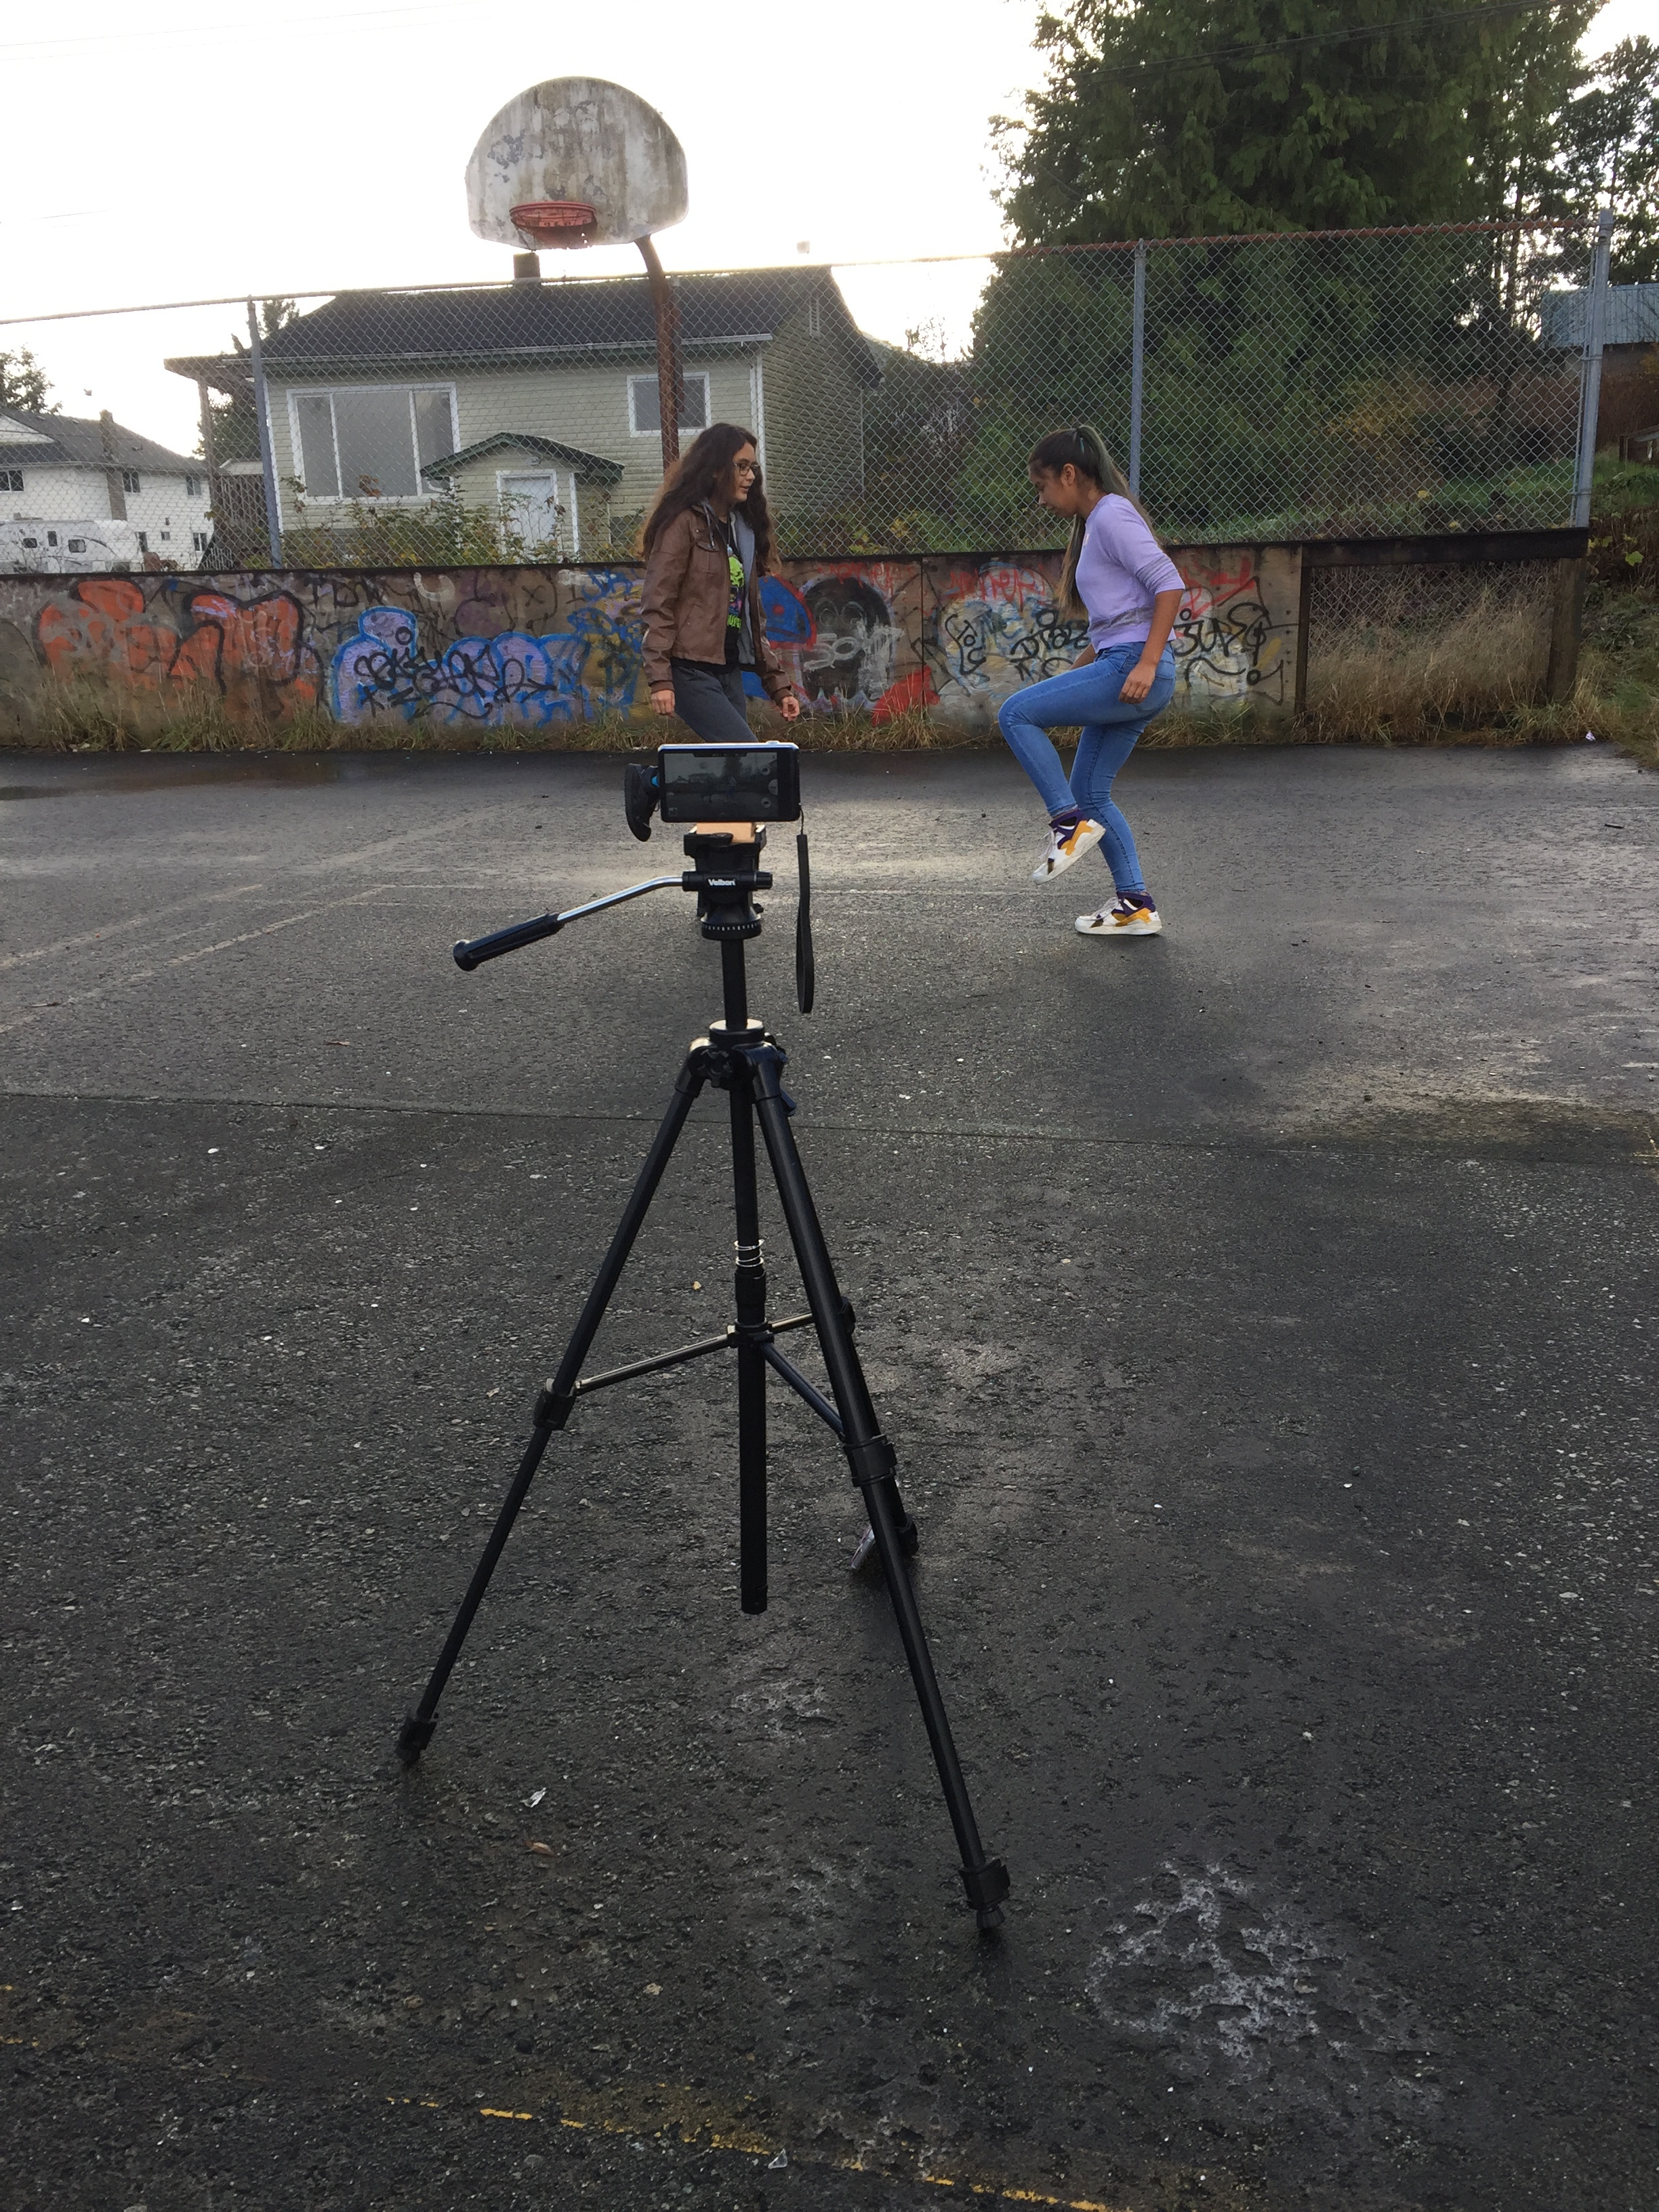 Filming the dance in the basketball court